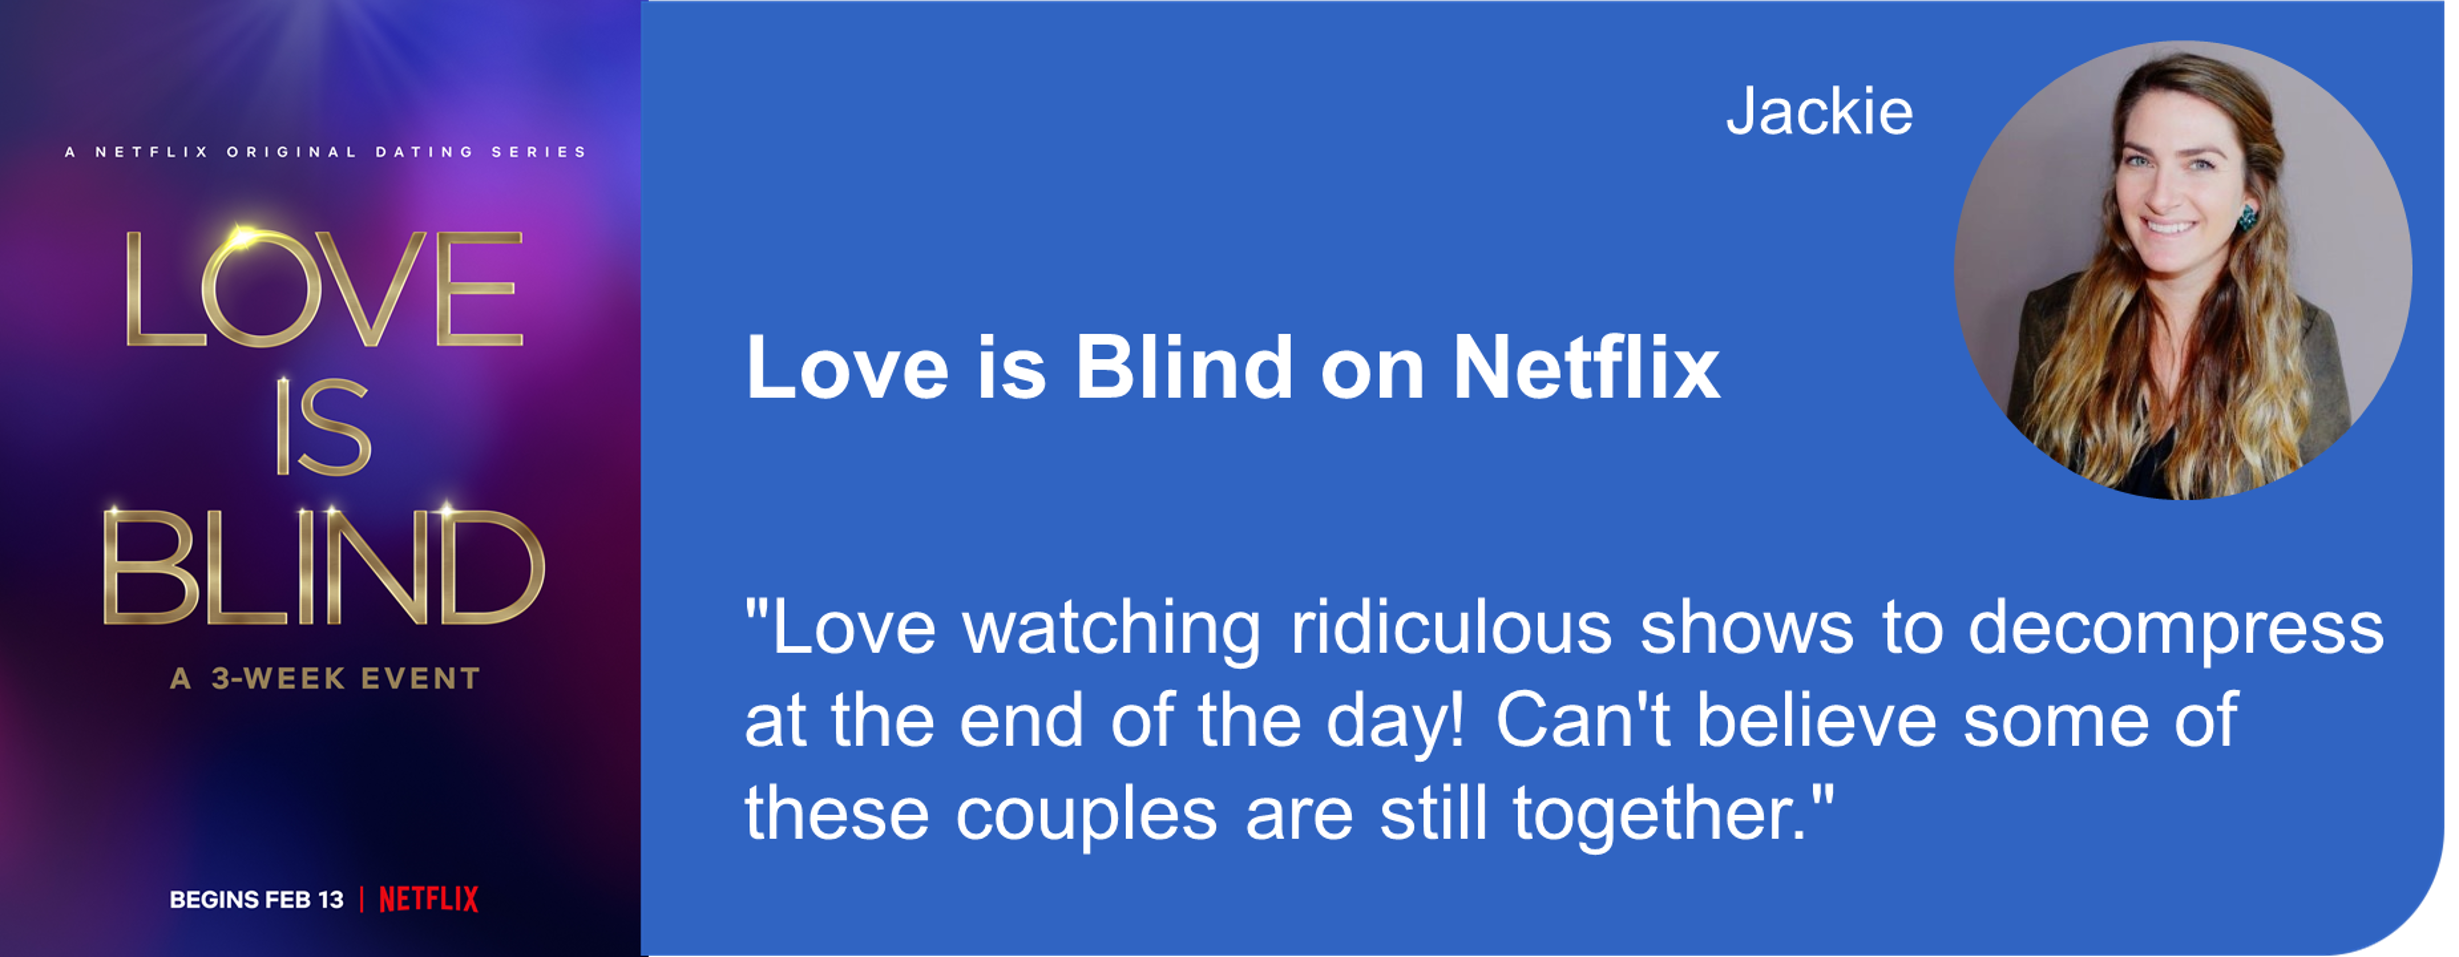 Creative Marketing Concepts Quarantine And Chill Binge-Worthy Love is blind Netflix